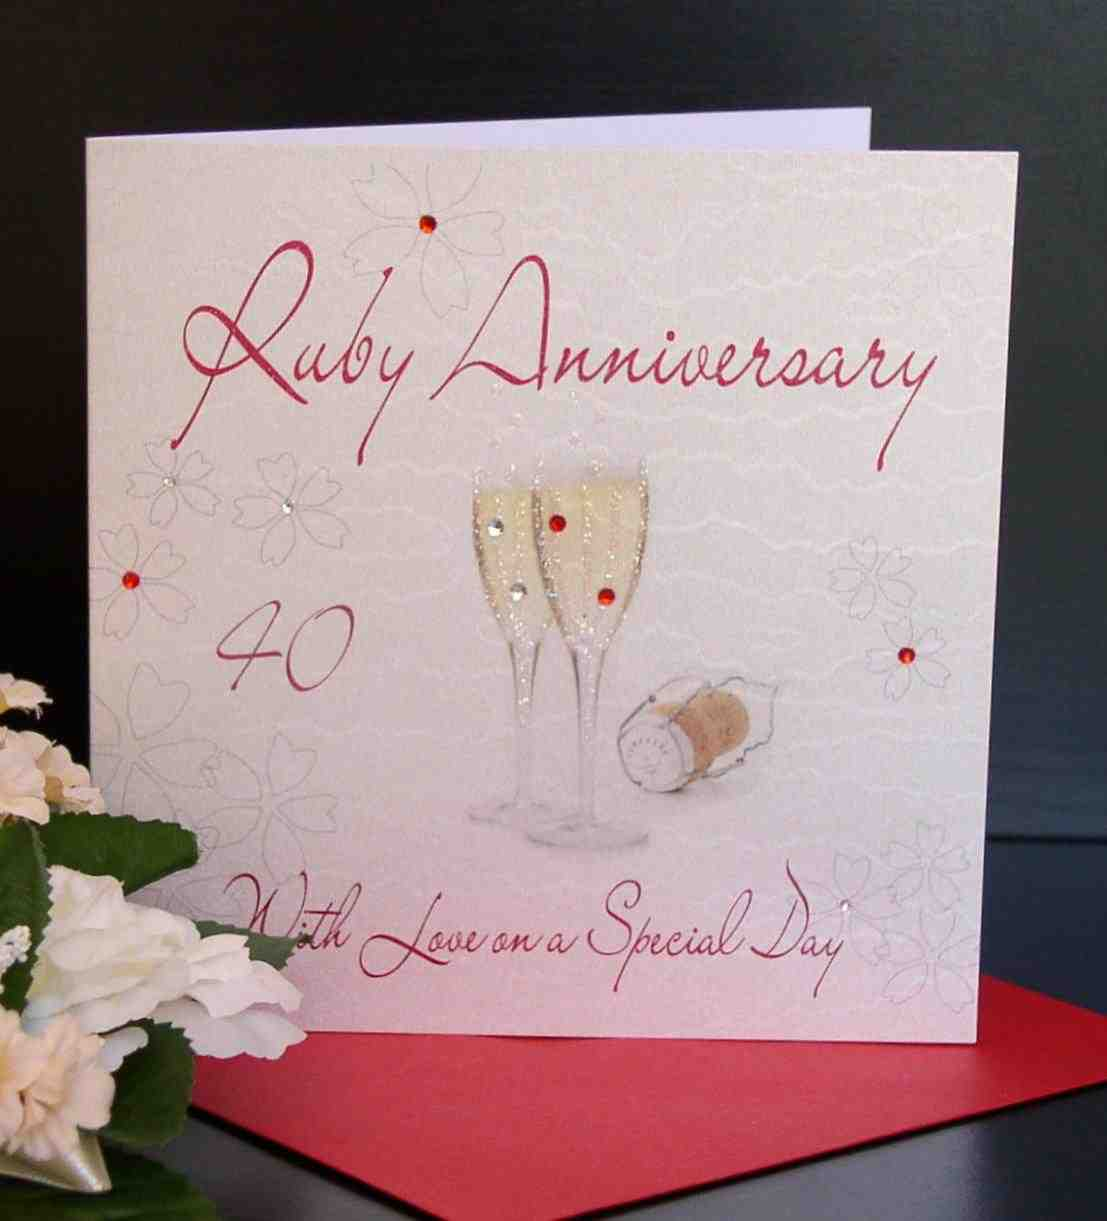 40th wedding anniversary gifts for parents wedding and for Best gifts for parents for wedding